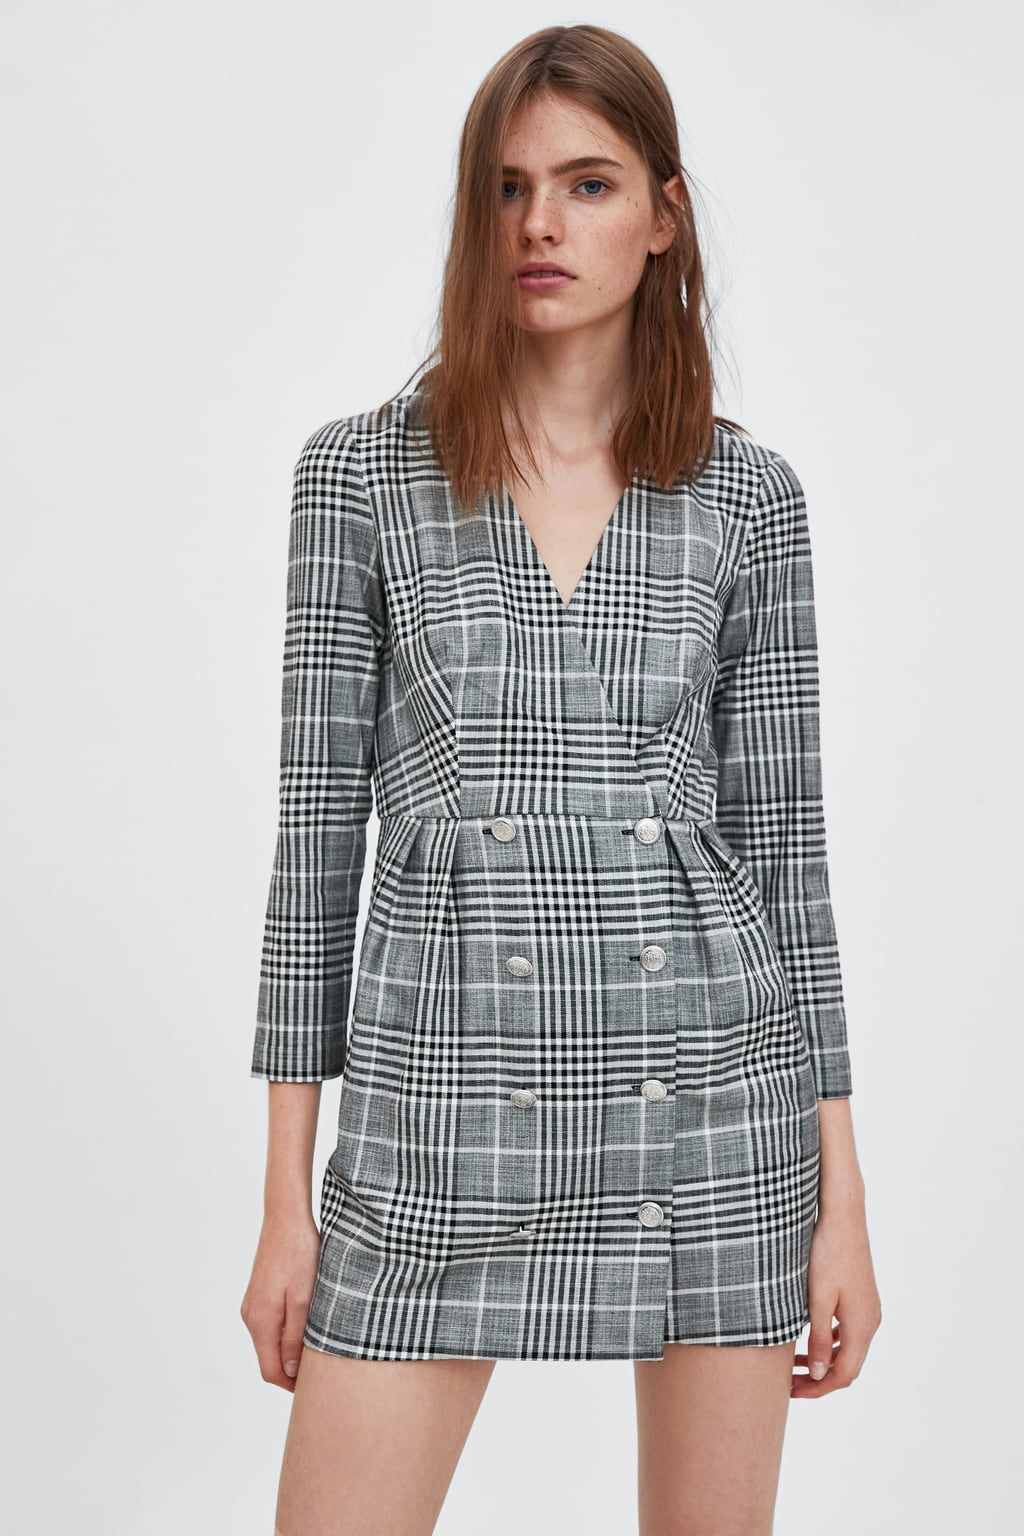 Full check dress | Платья, Стиль